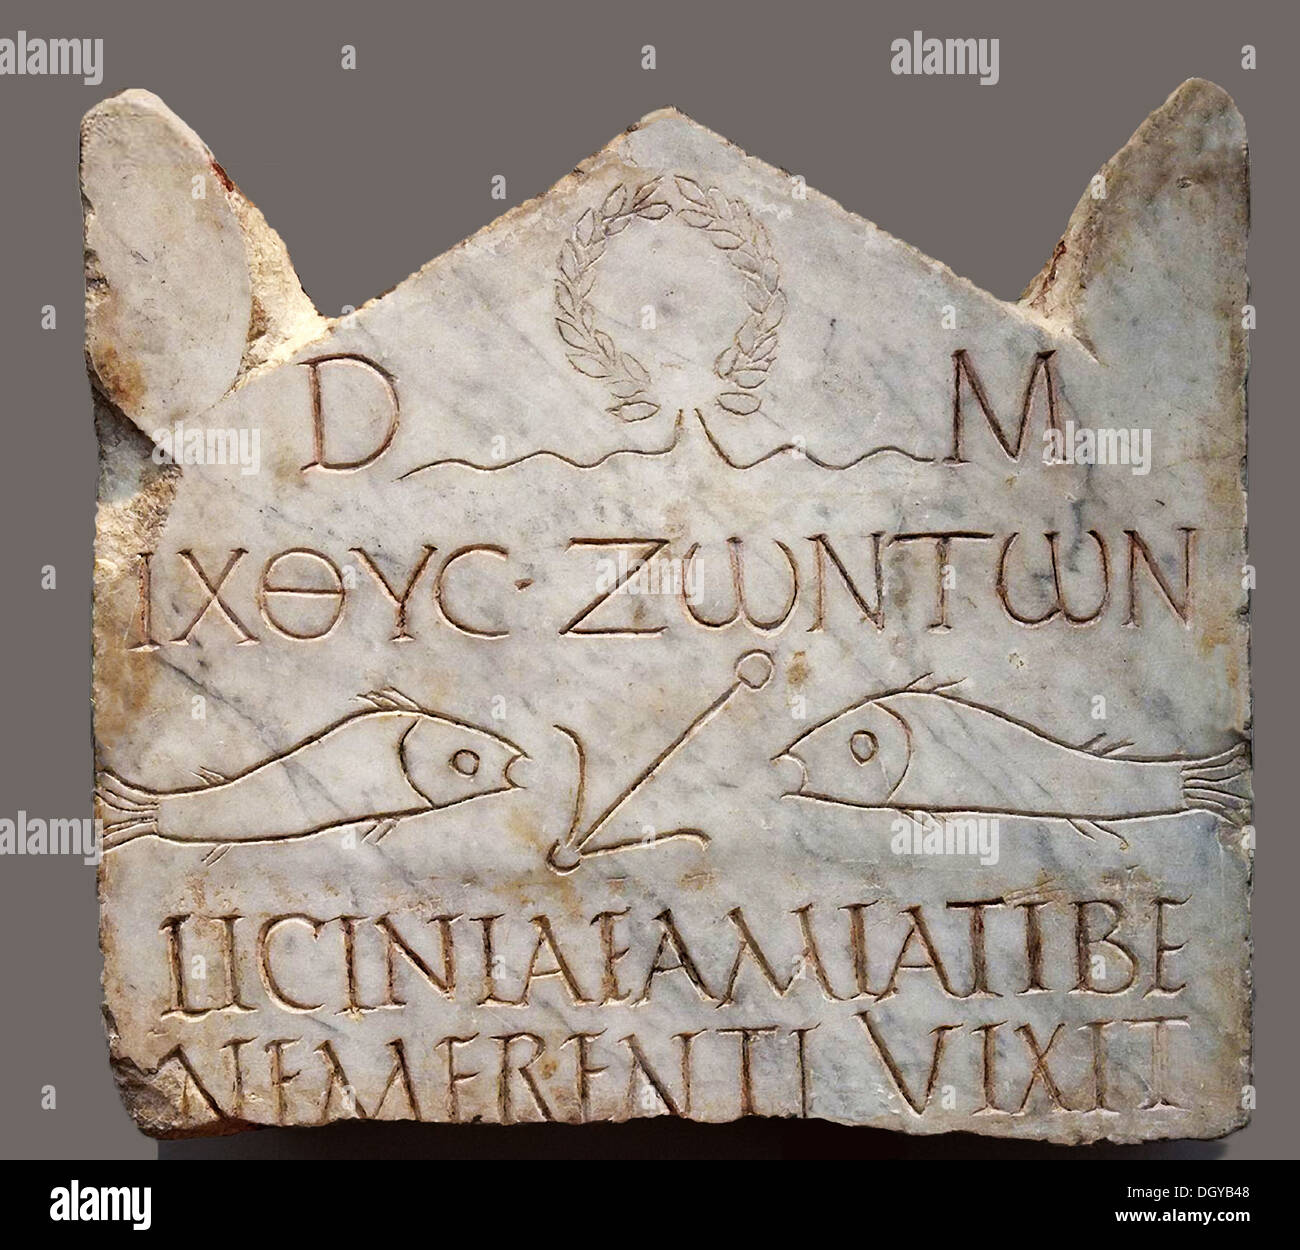 5537. Funerary inscription dating early 3rd. C. AD. of a Christian woman called Licinia Amias Terme depicting fish symbols and anker. It was excavated near the Vatican Necropolis. - Stock Image